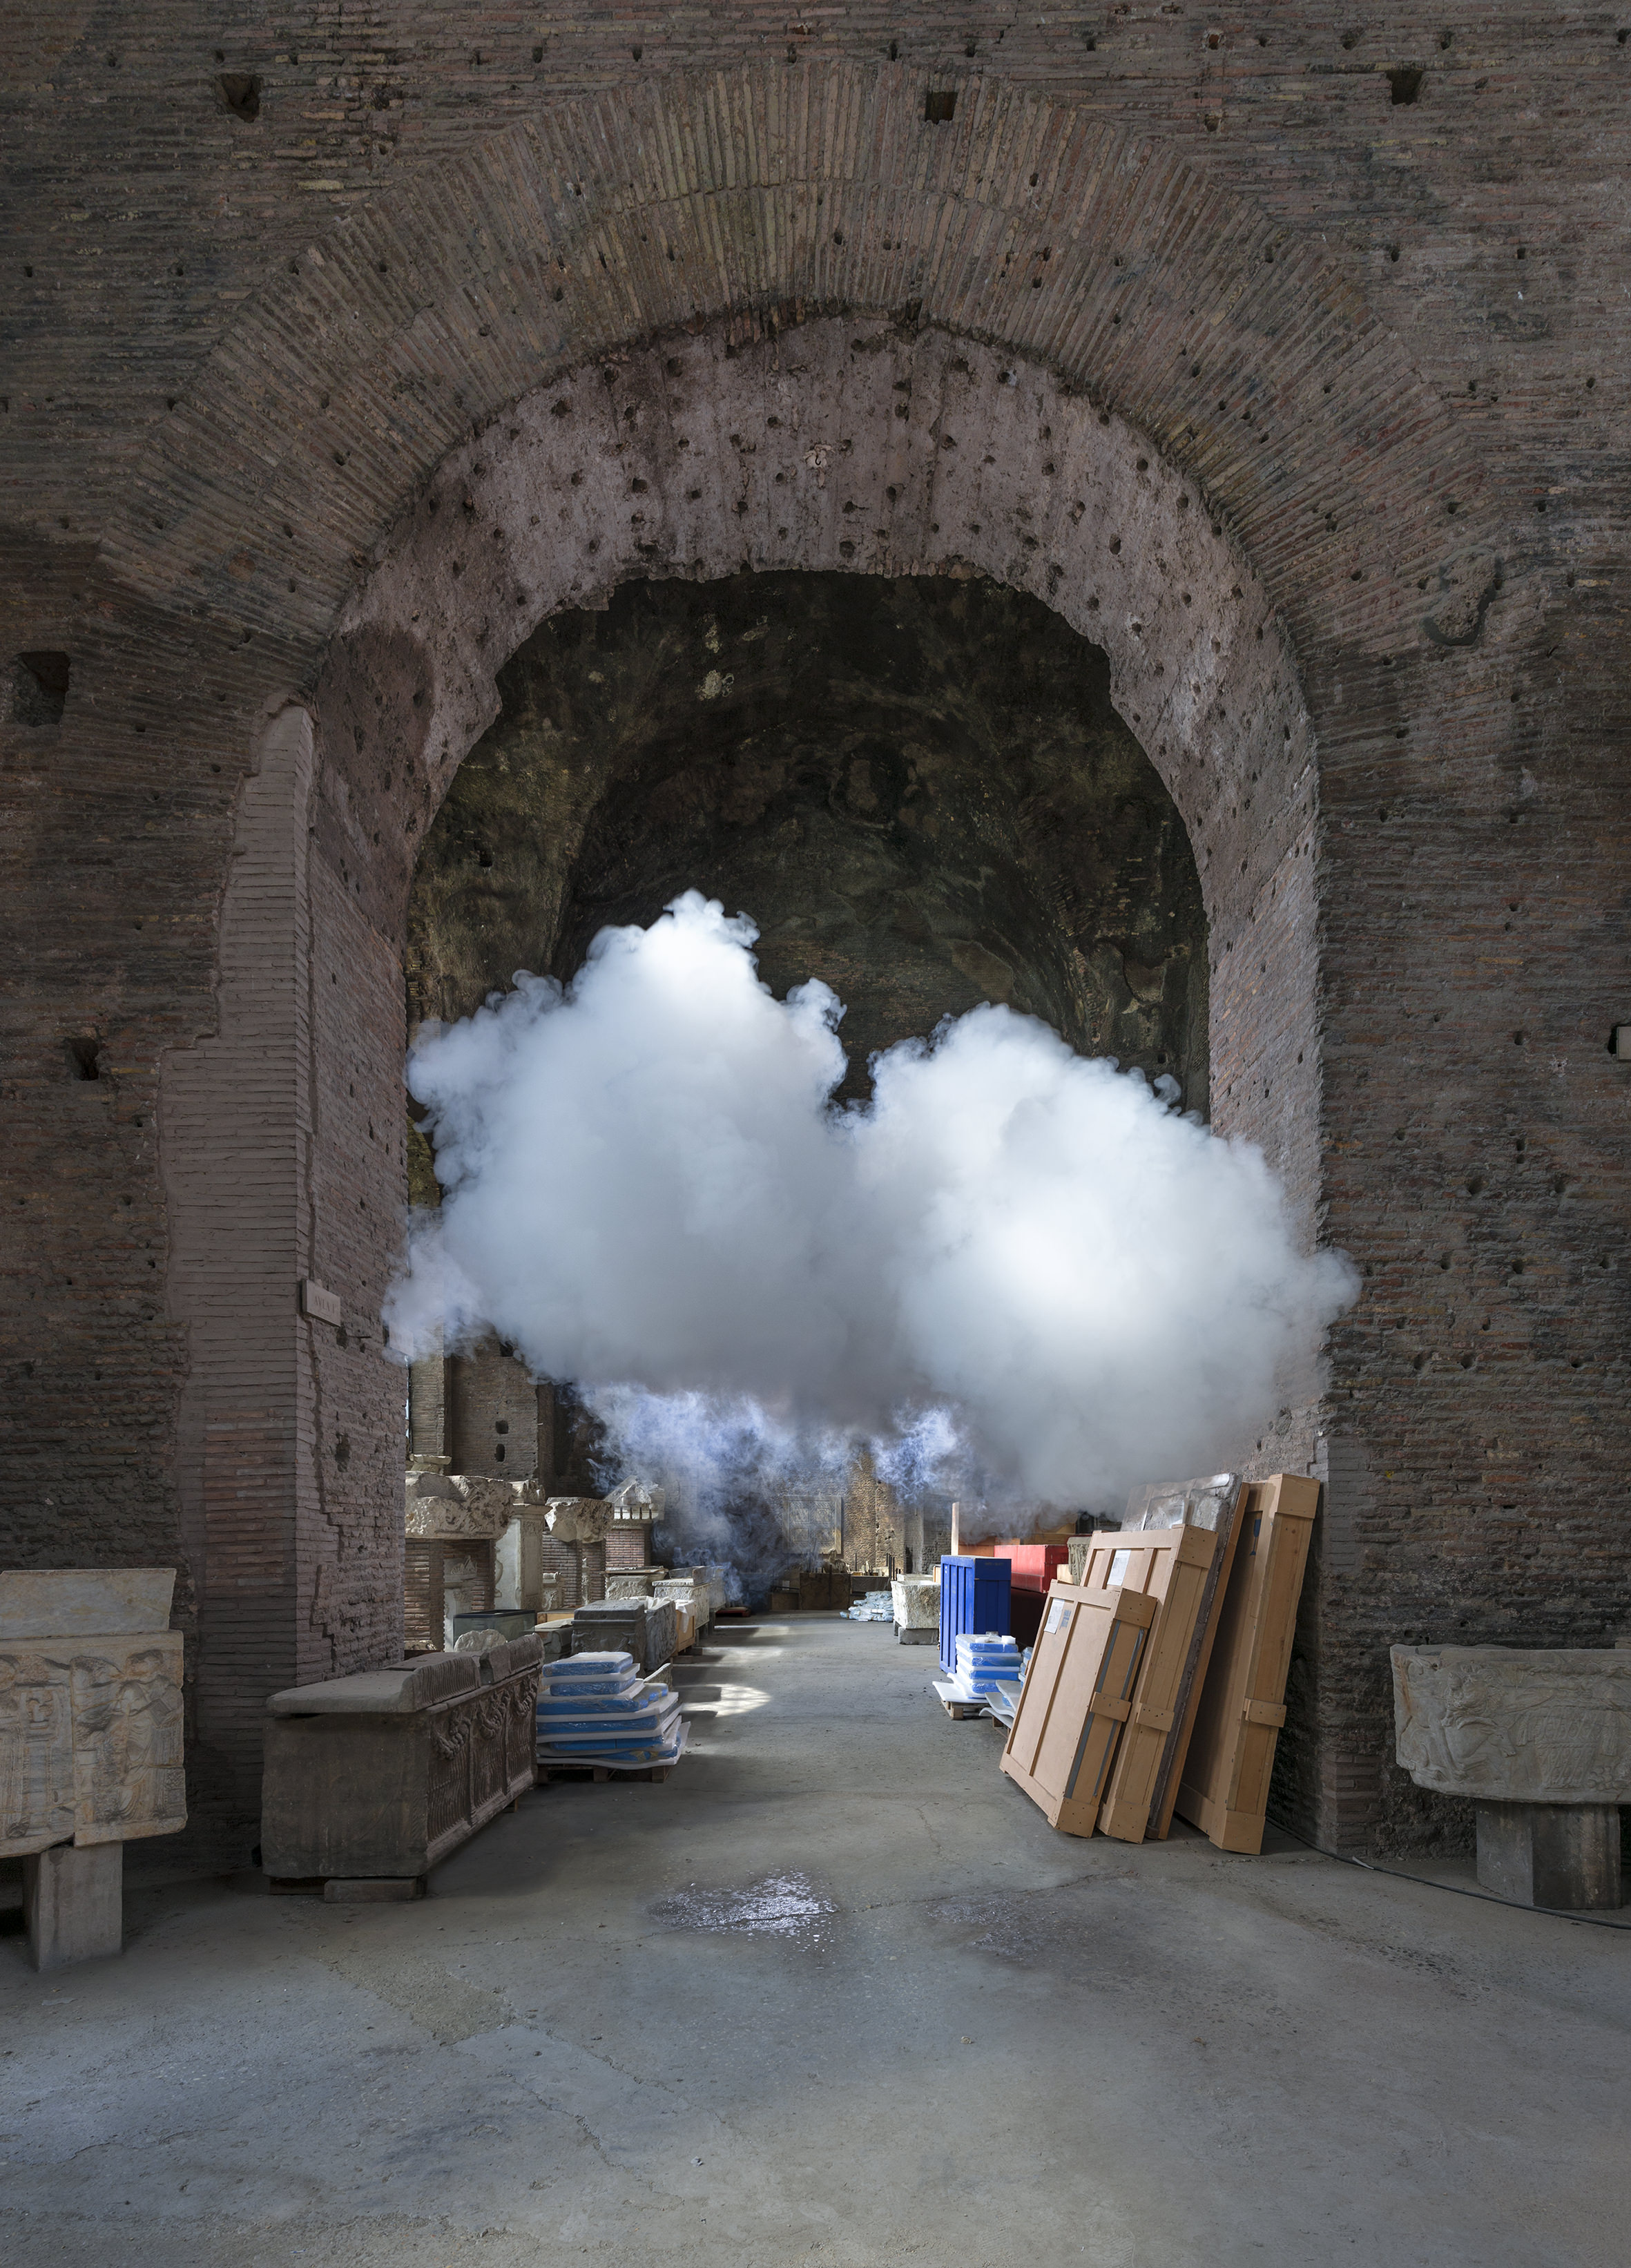 Berndnaut Smilde, Nimbus Diocleziano Aula I, 2018, digital C-type print mounted on aluminium with subframe, 75 x 104 : 125 x 174 cm, Ed. of 6 + 2 AP